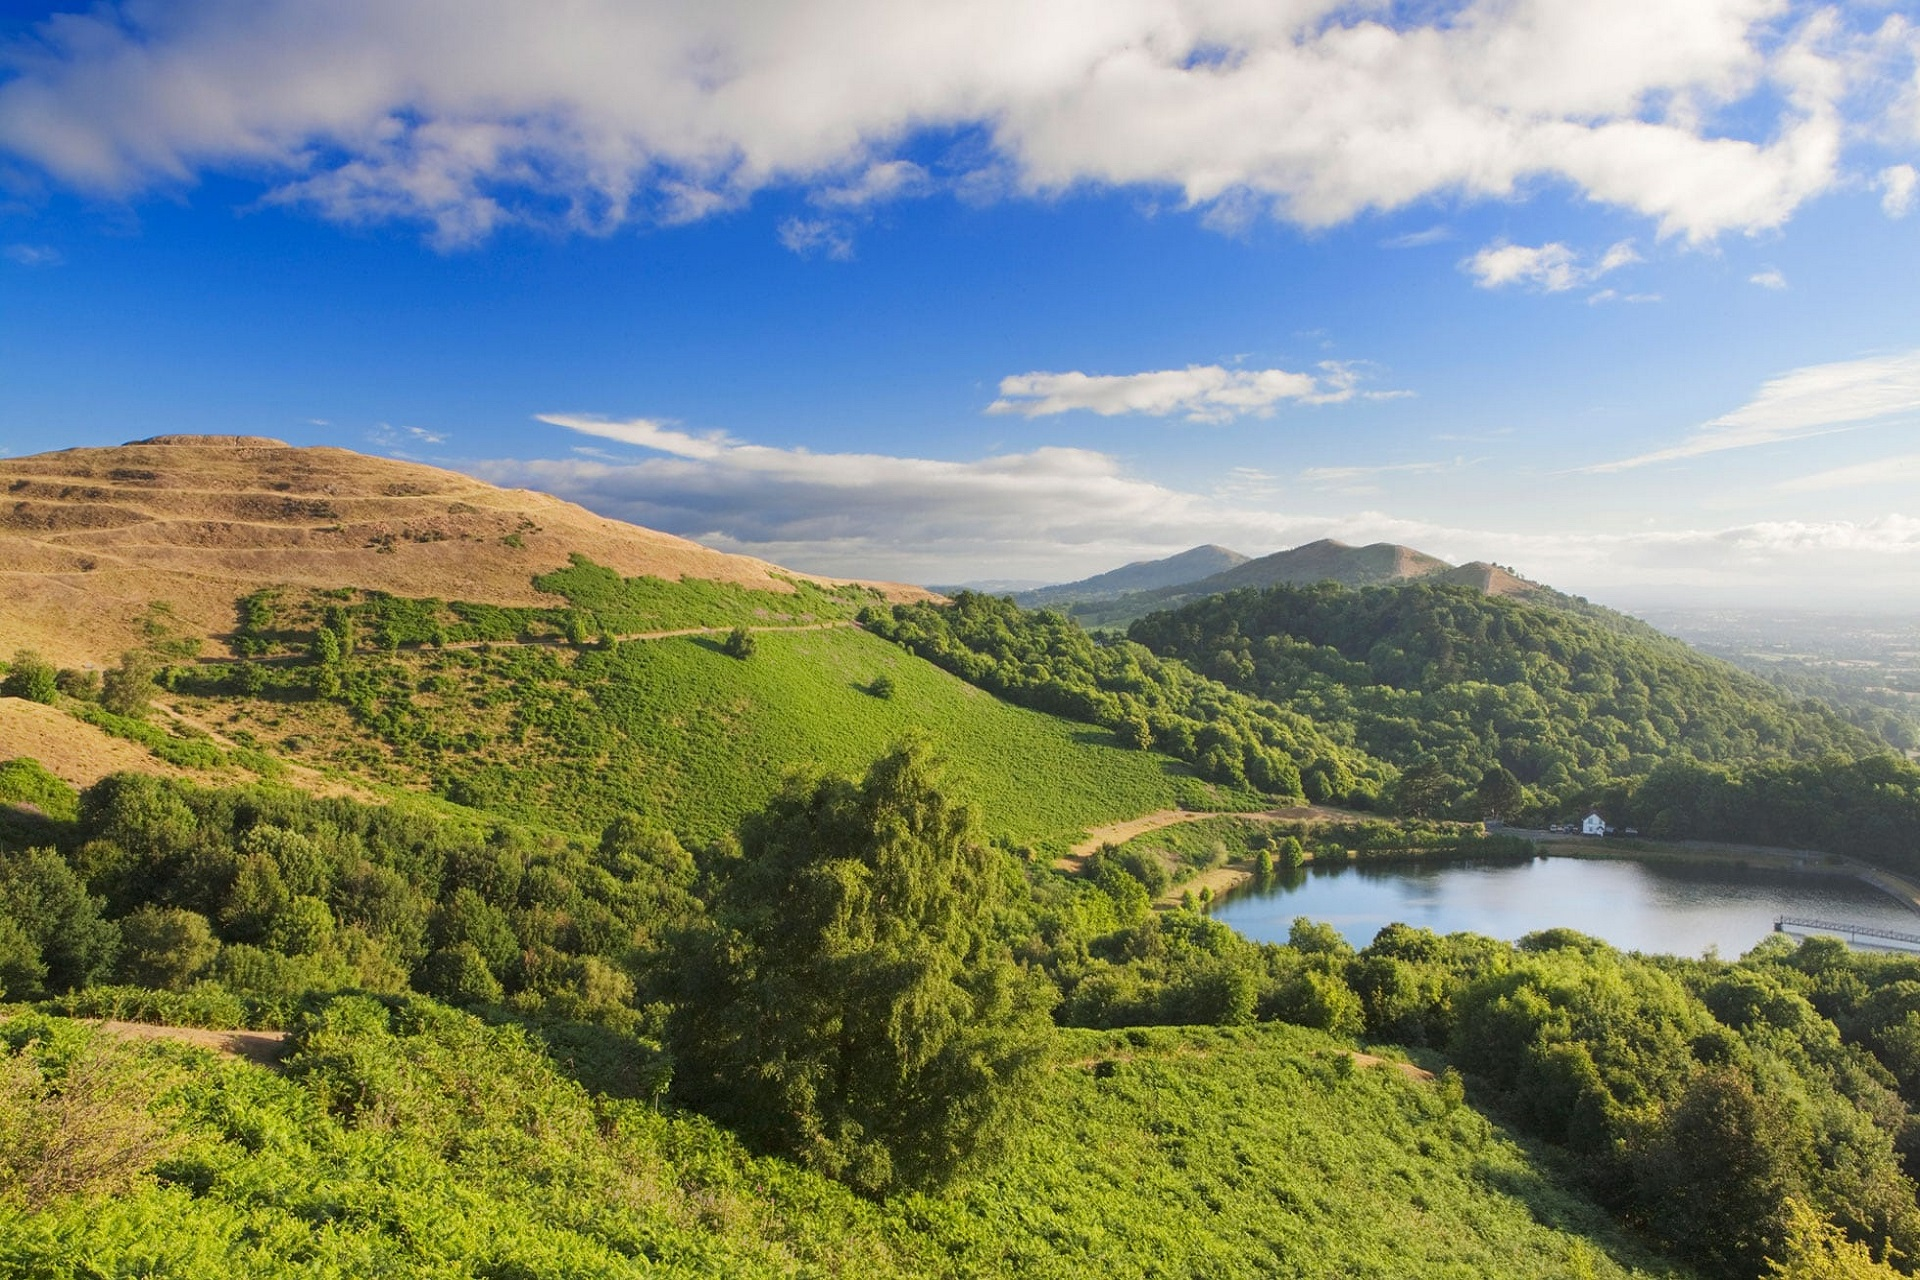 The Malvern Hills as an Area of Outstanding Natual Beauty (AONB)